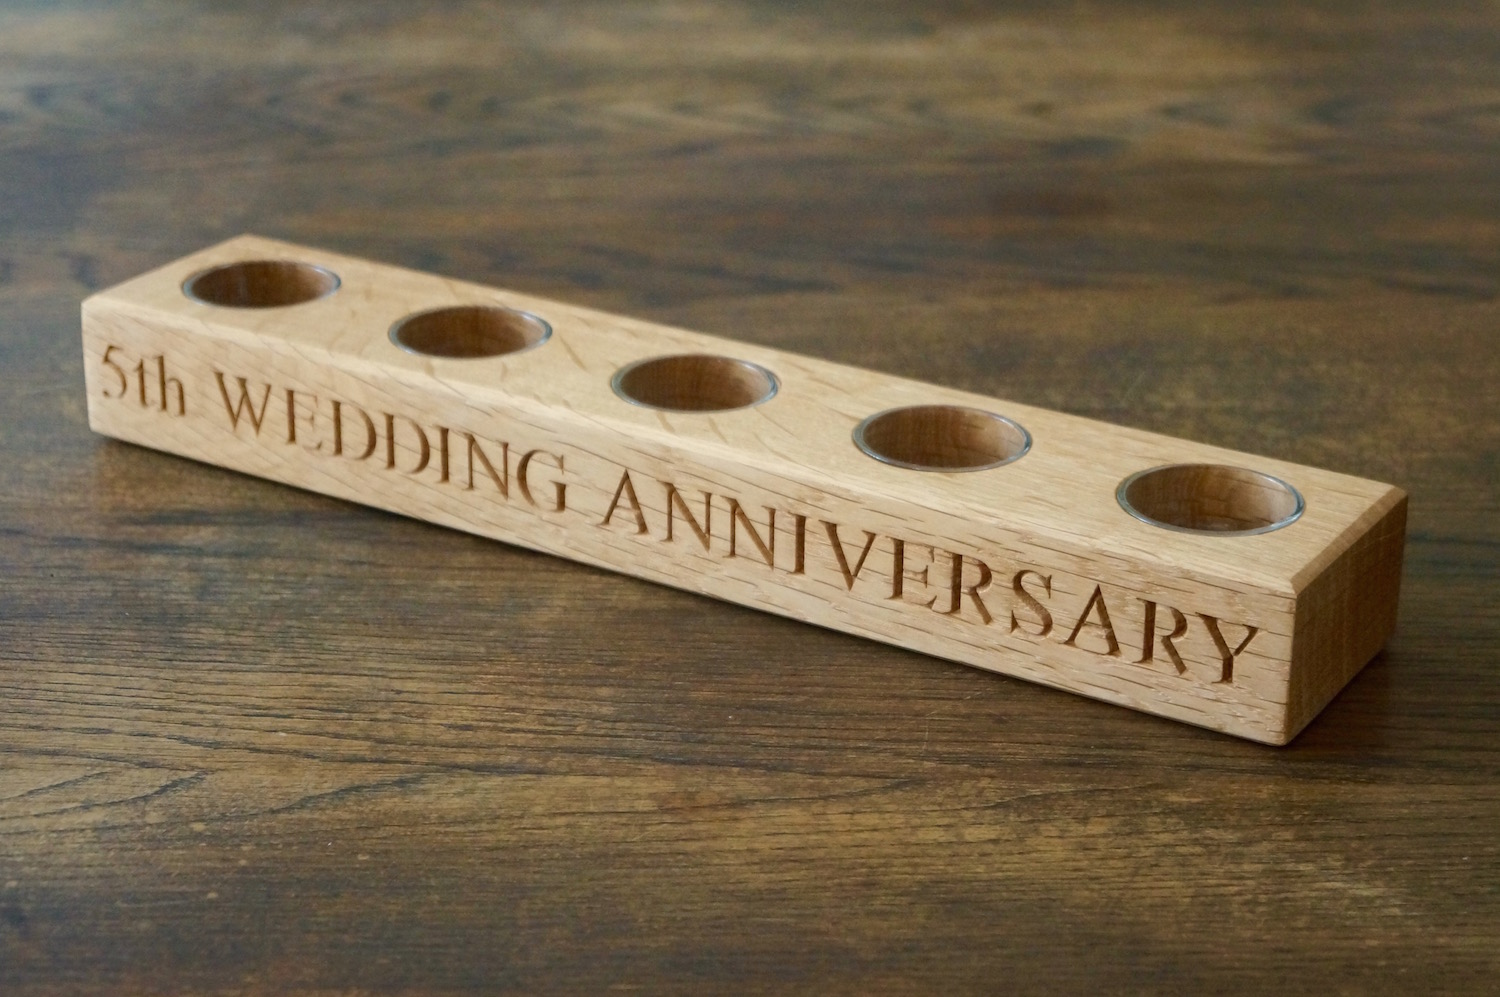 5th Wedding Anniversary Wooden Gifts: Stunning Personalised Wooden Gifts